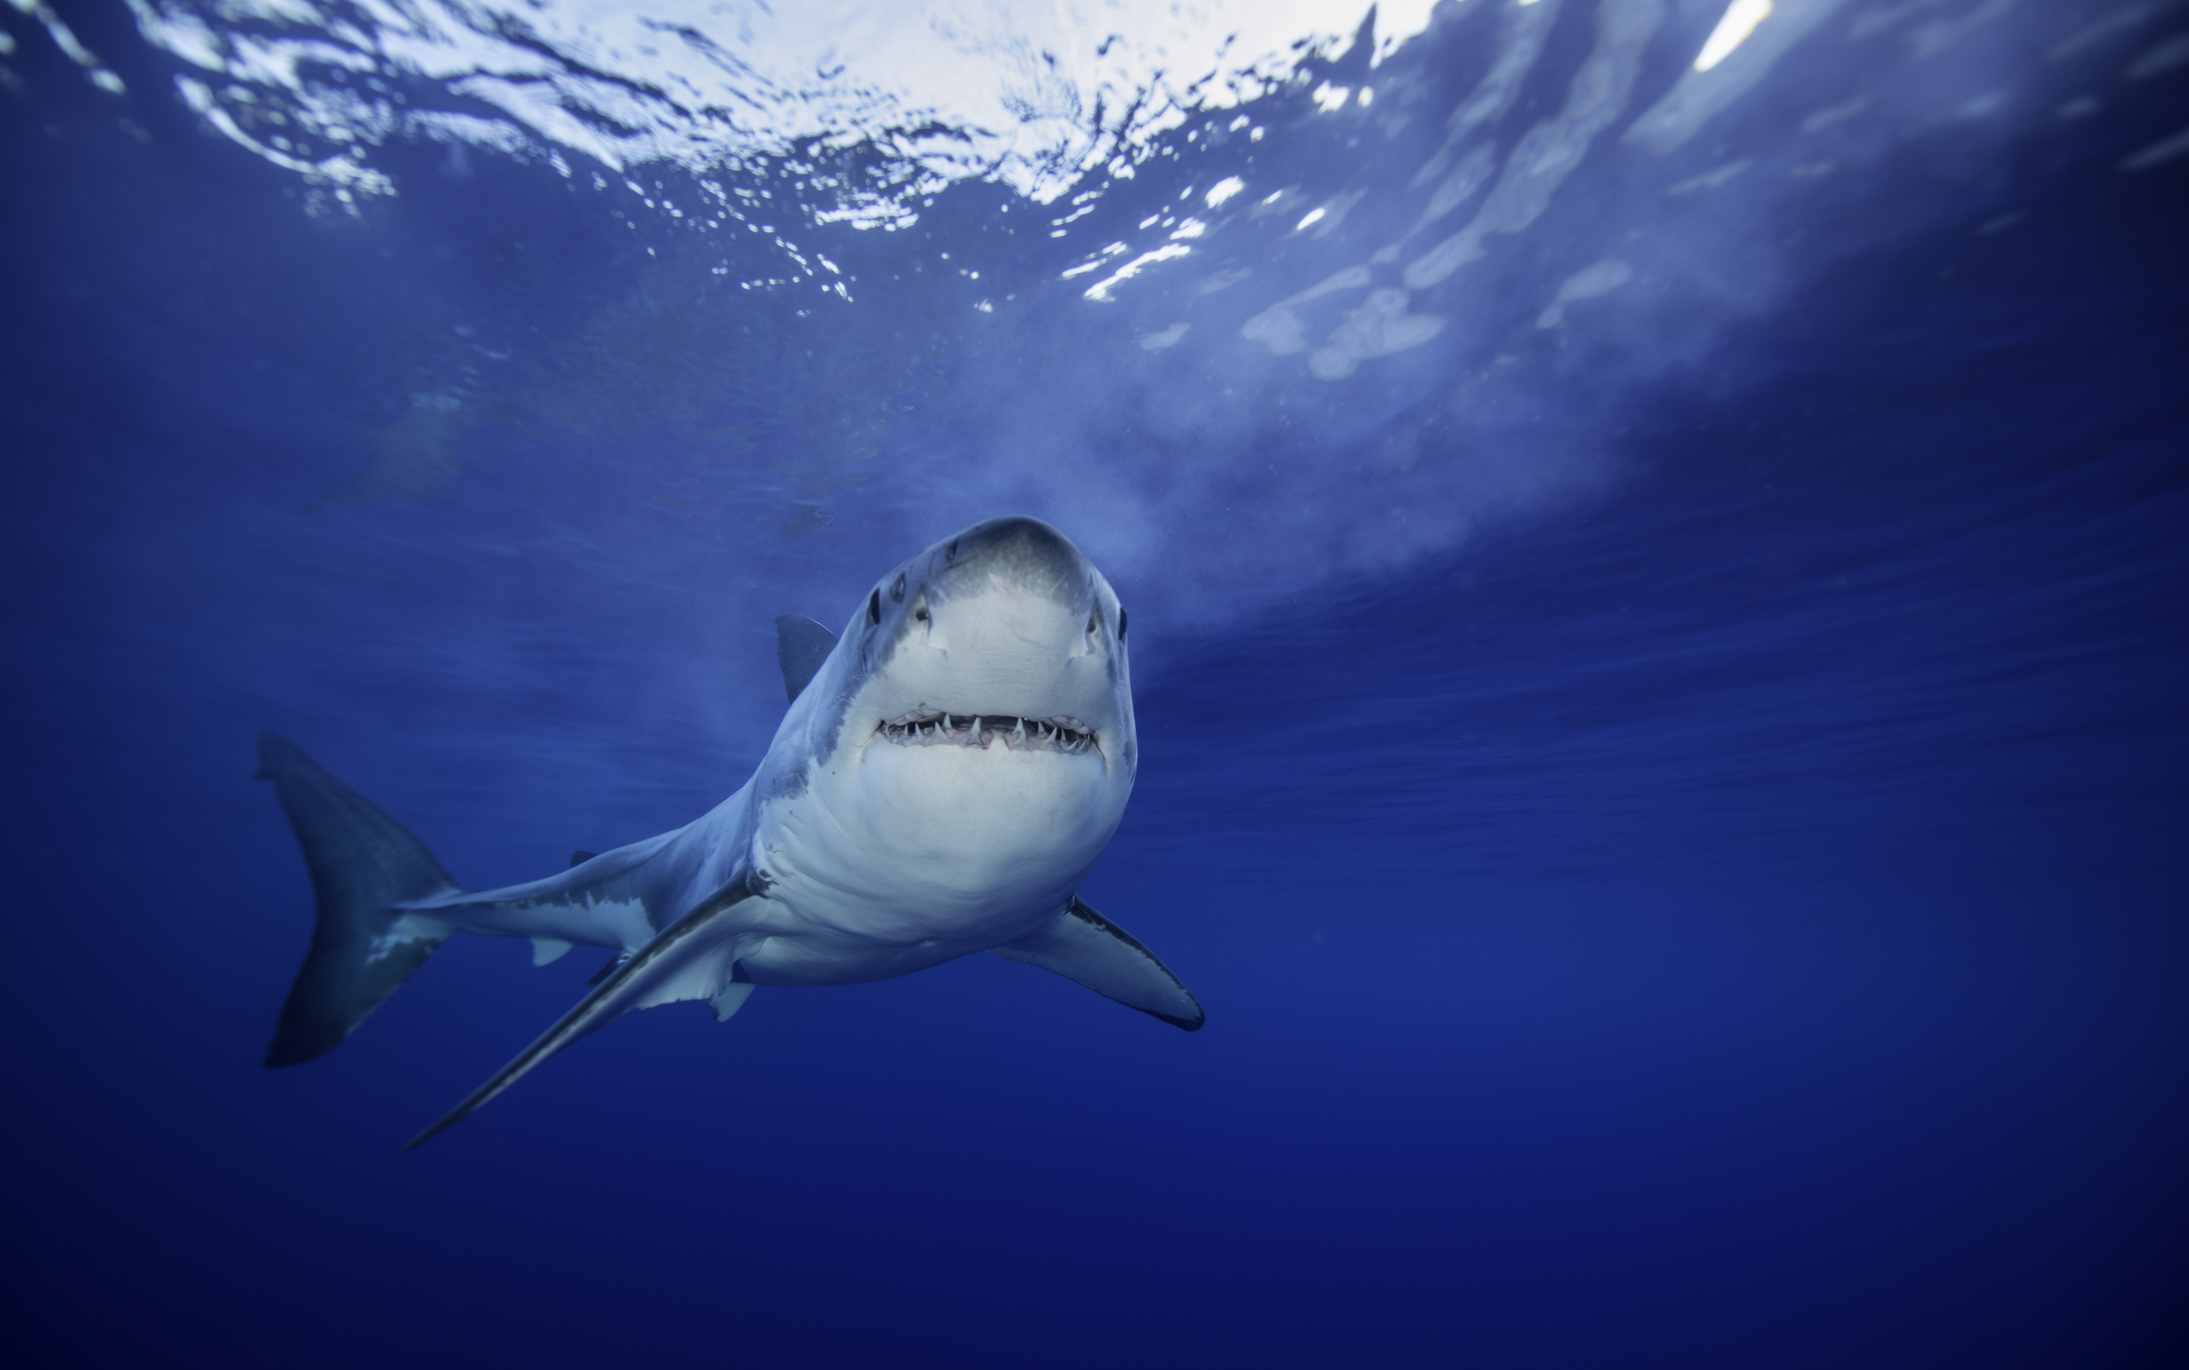 Heres How To Stream Shark Week 2018 If You Dont Have Cable Hellogiggles